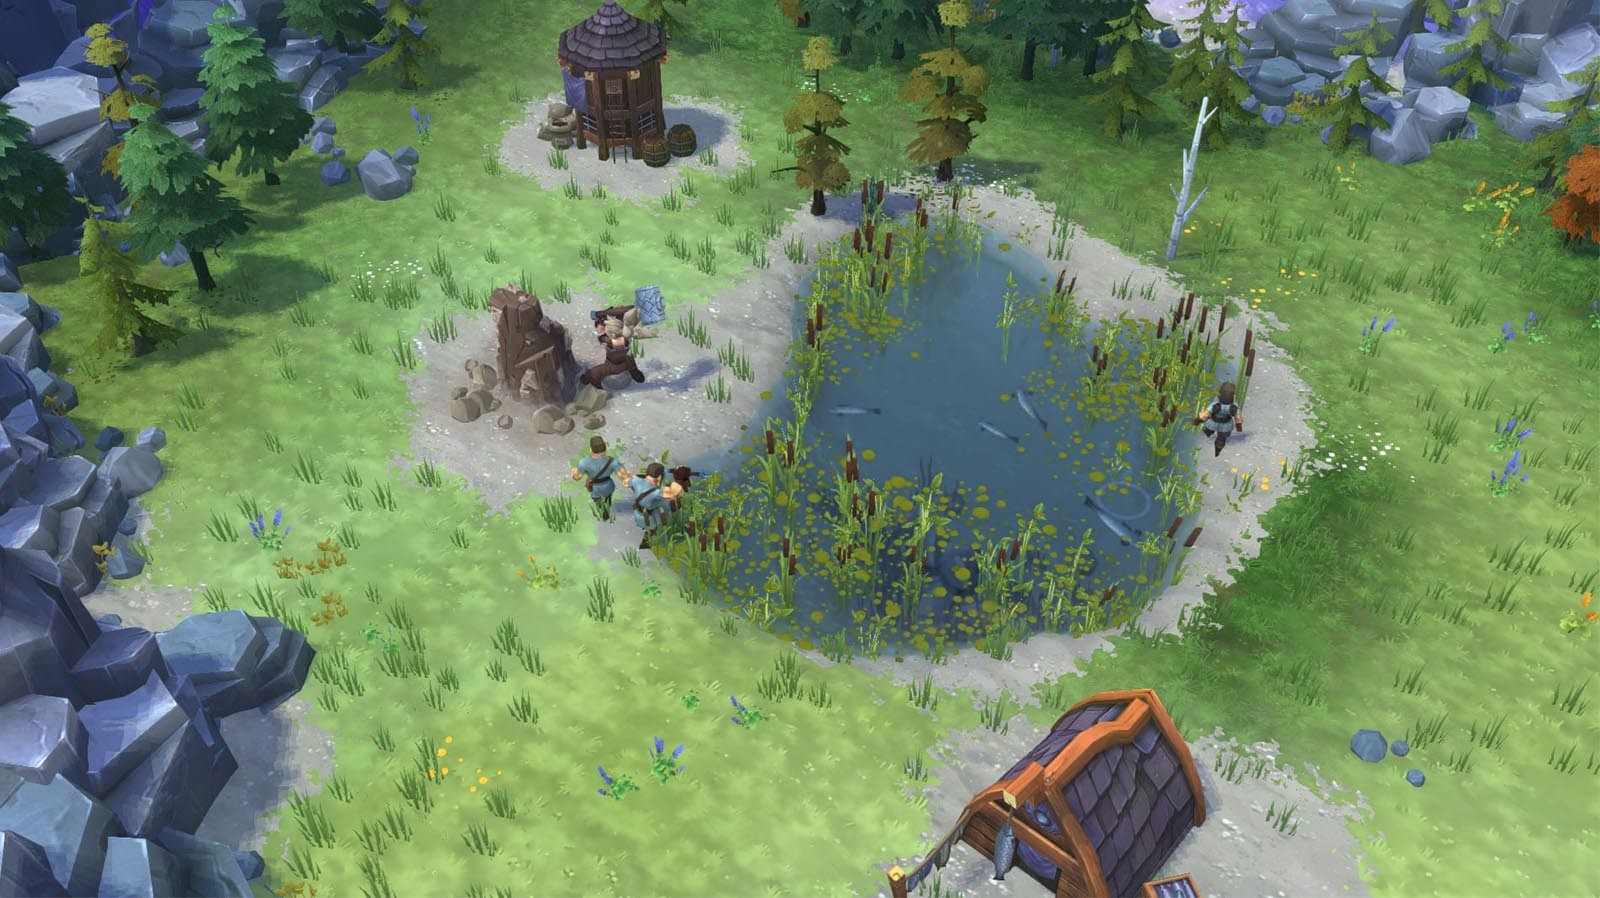 Northgard - Svardilfari, Clan of the Horse [Steam CD Key] for PC, Mac and  Linux - Buy now